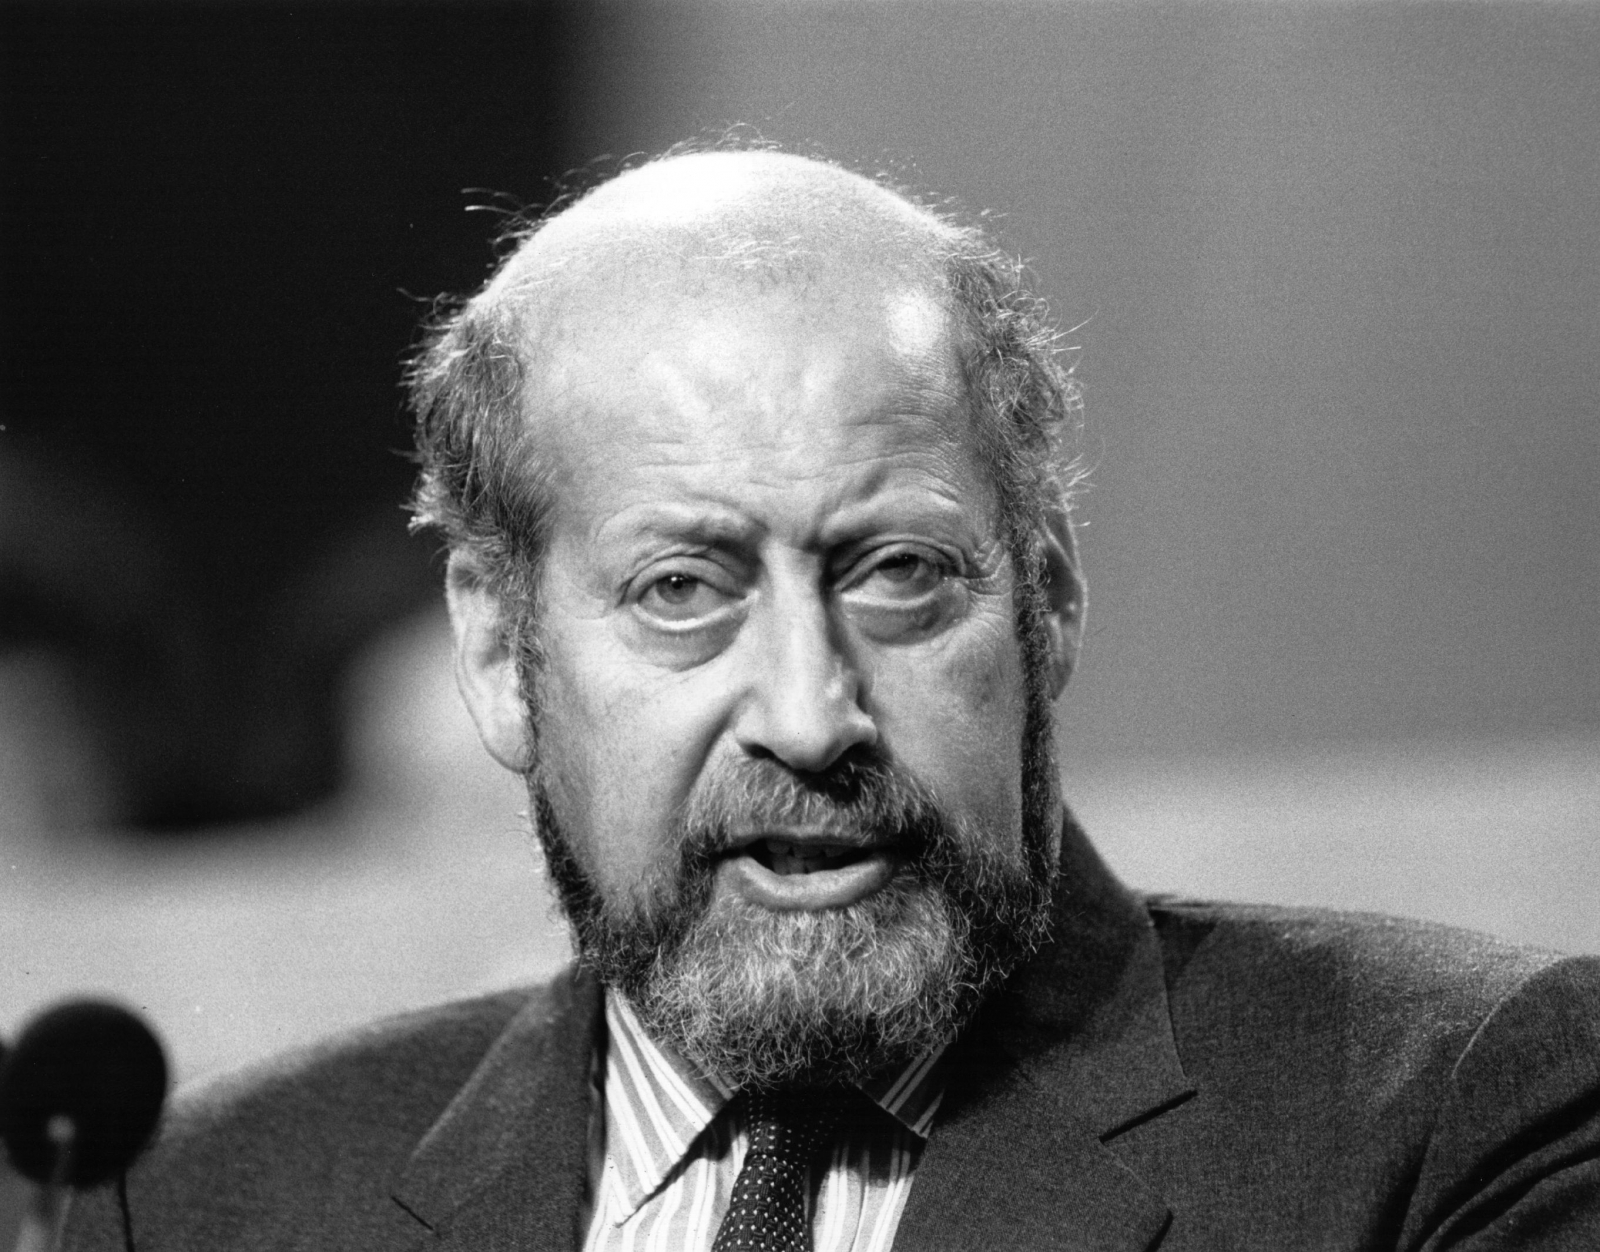 clement freud paedophile sex abuser